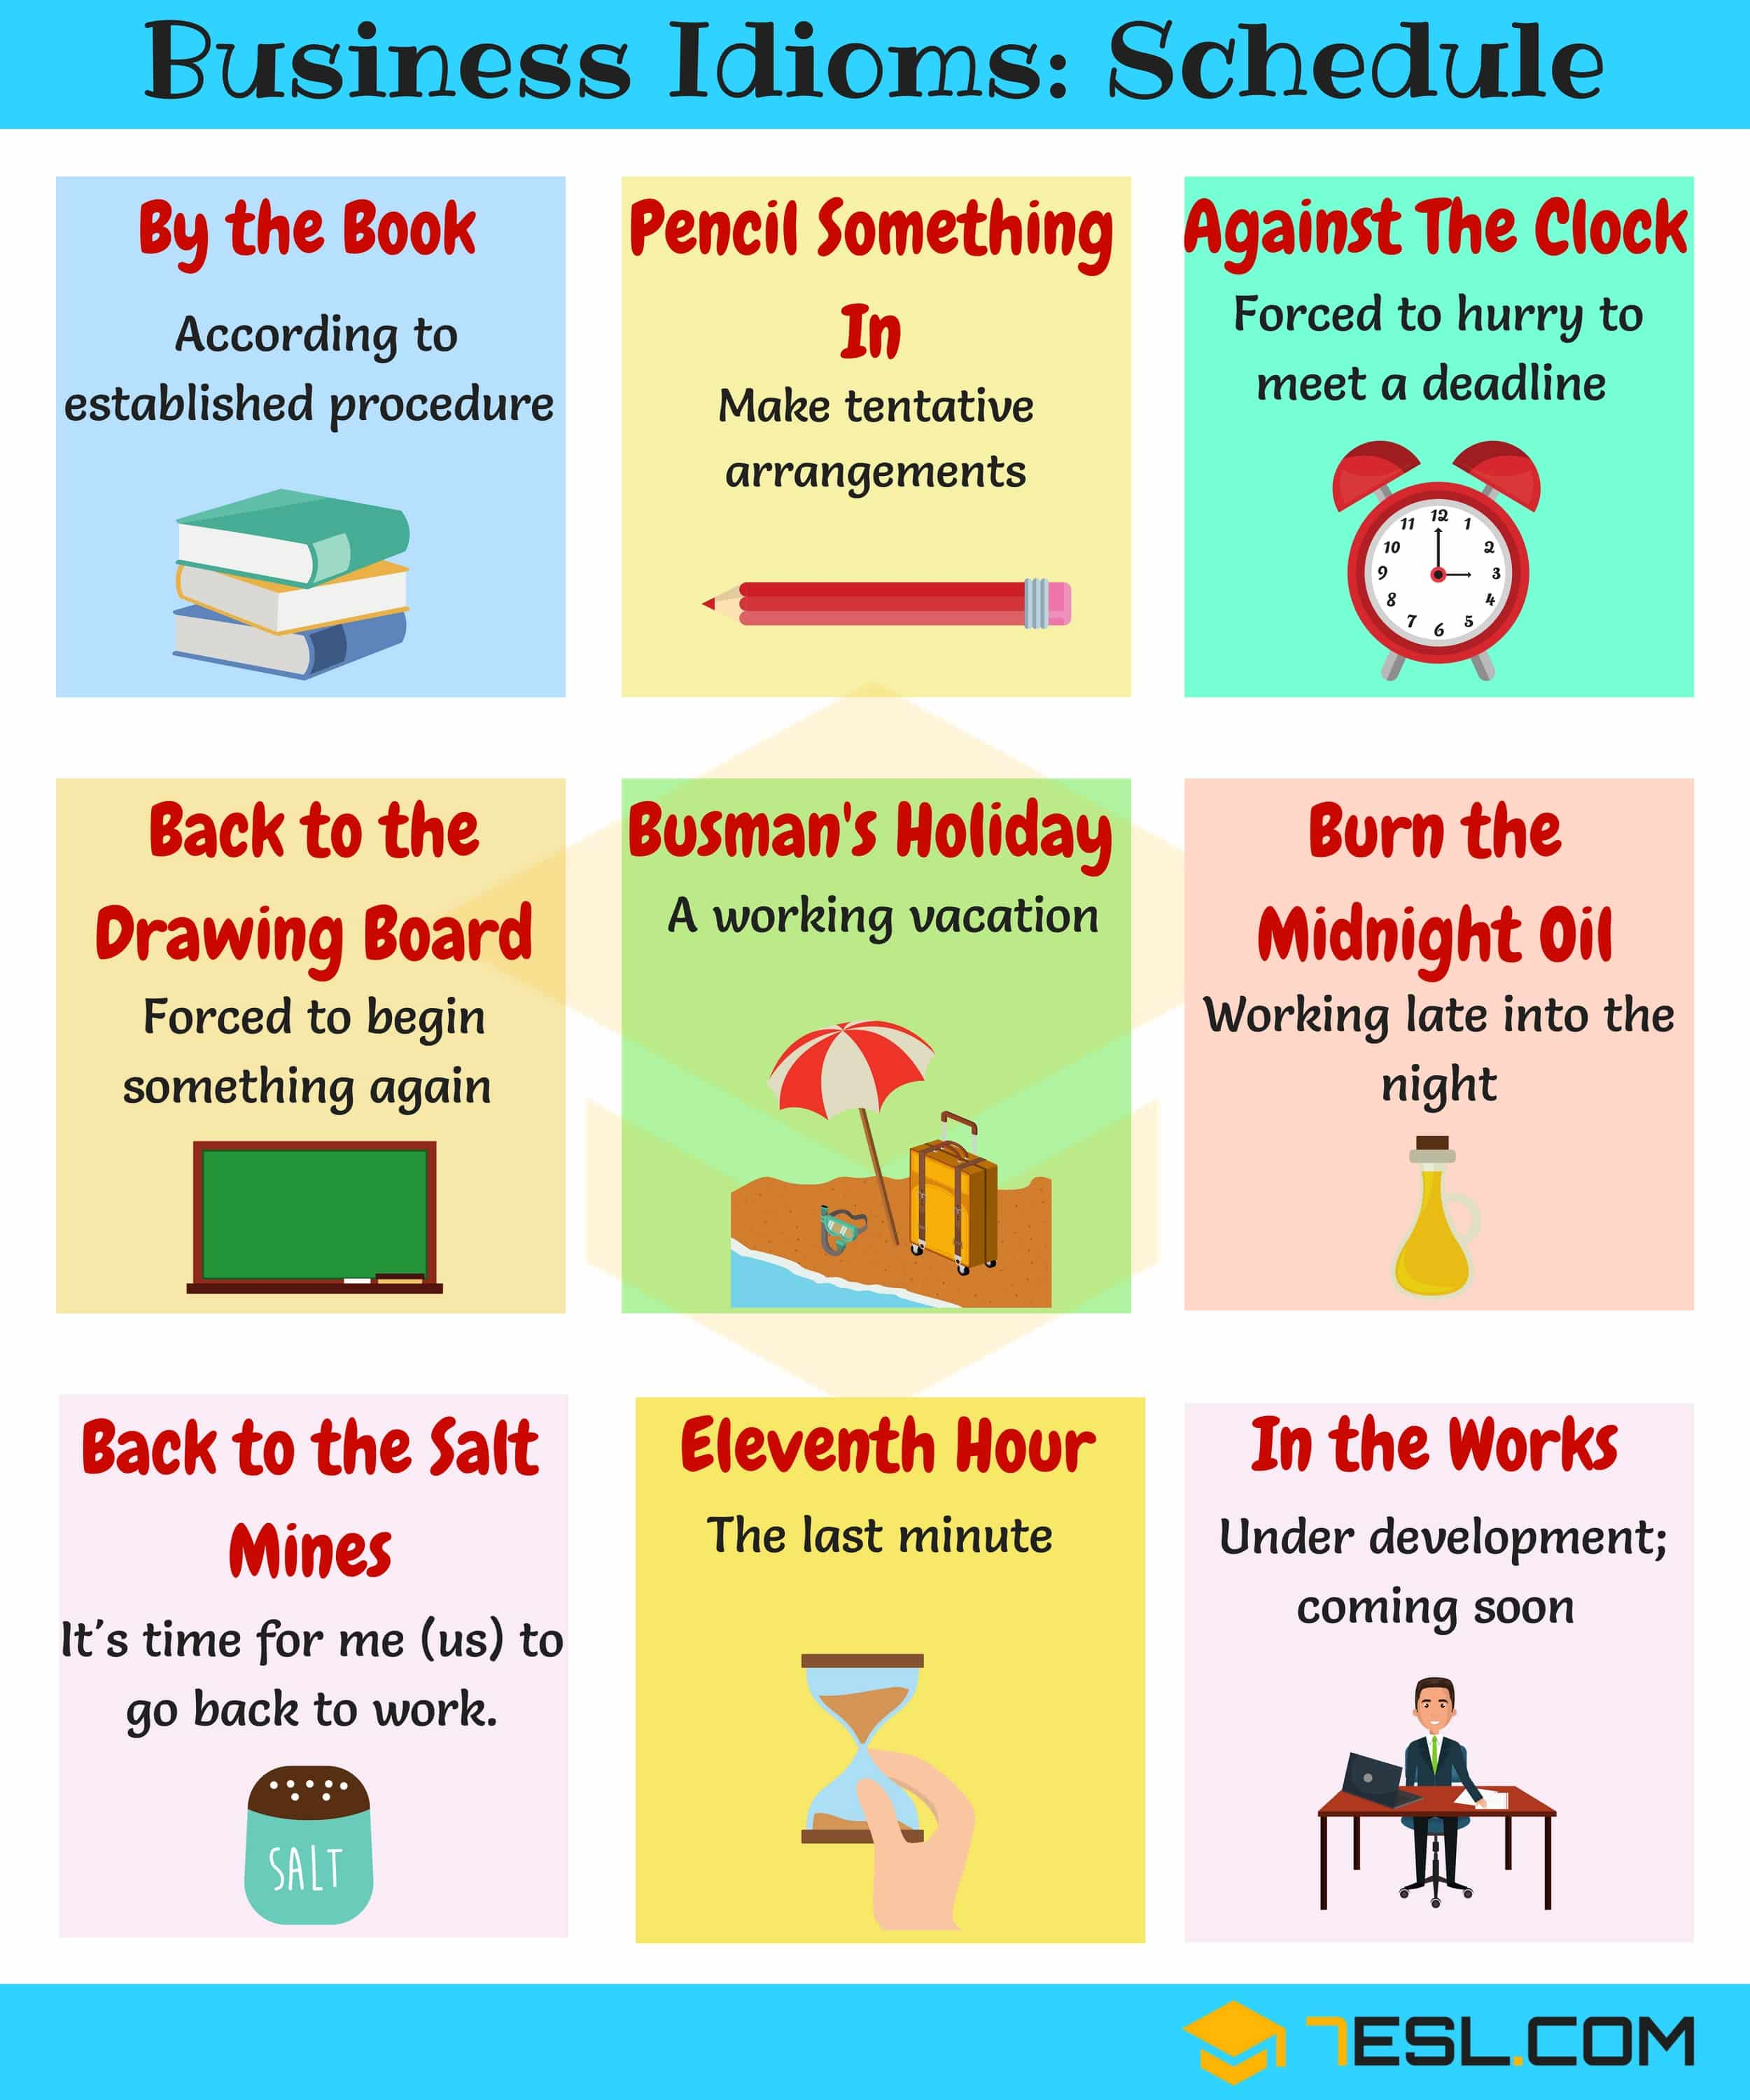 Business Idioms Schedule